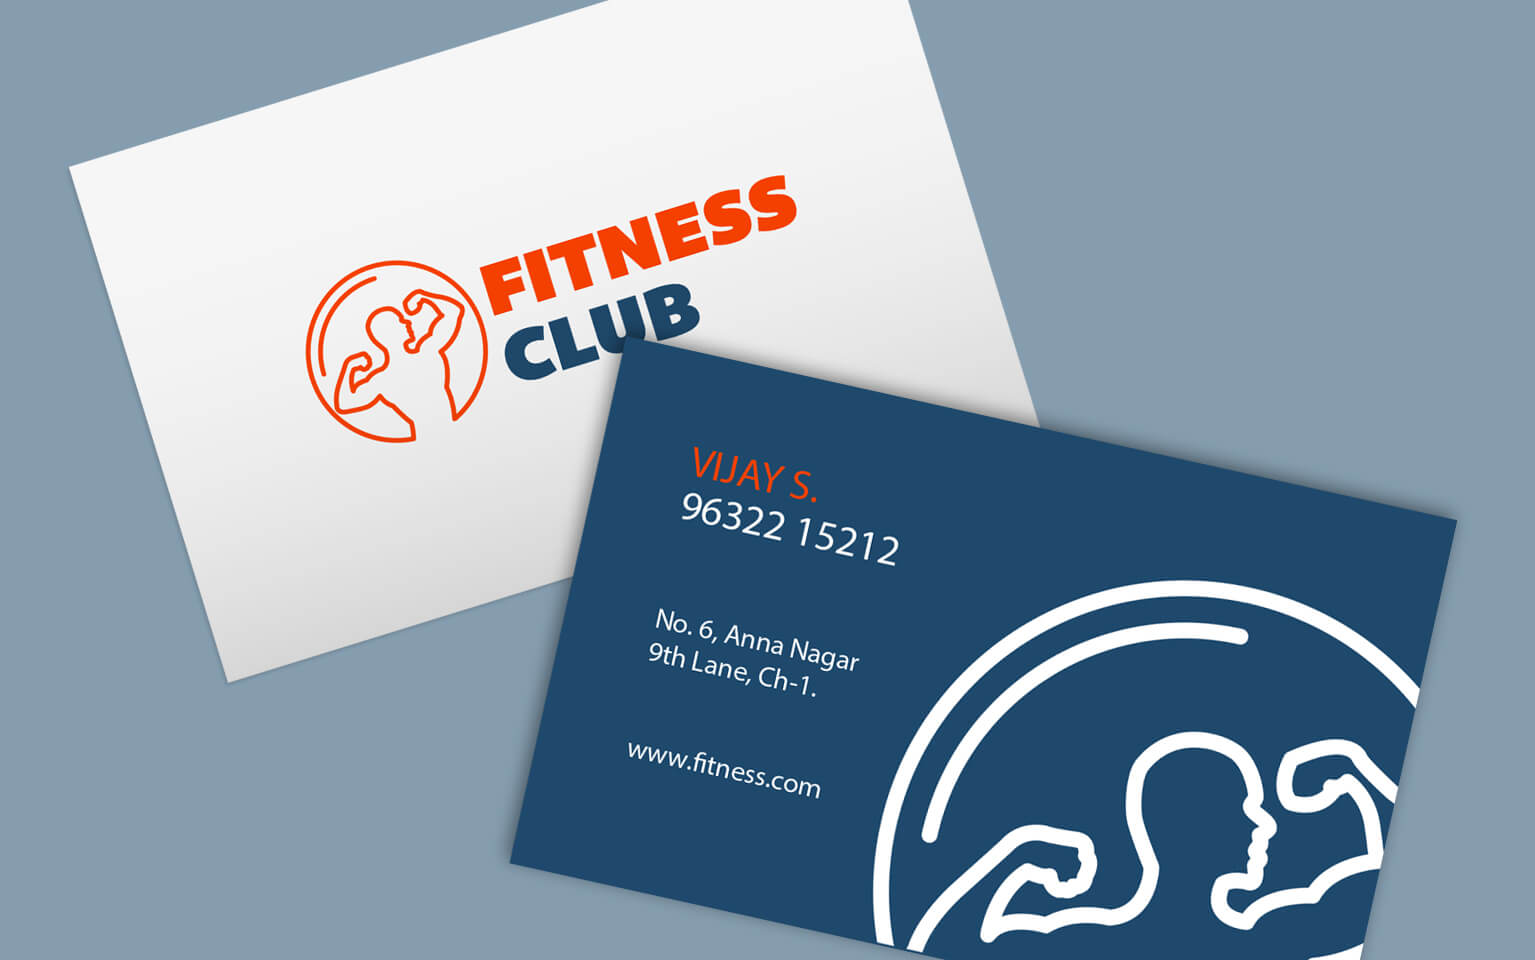 Fitness business cards - gym trainer visiting card